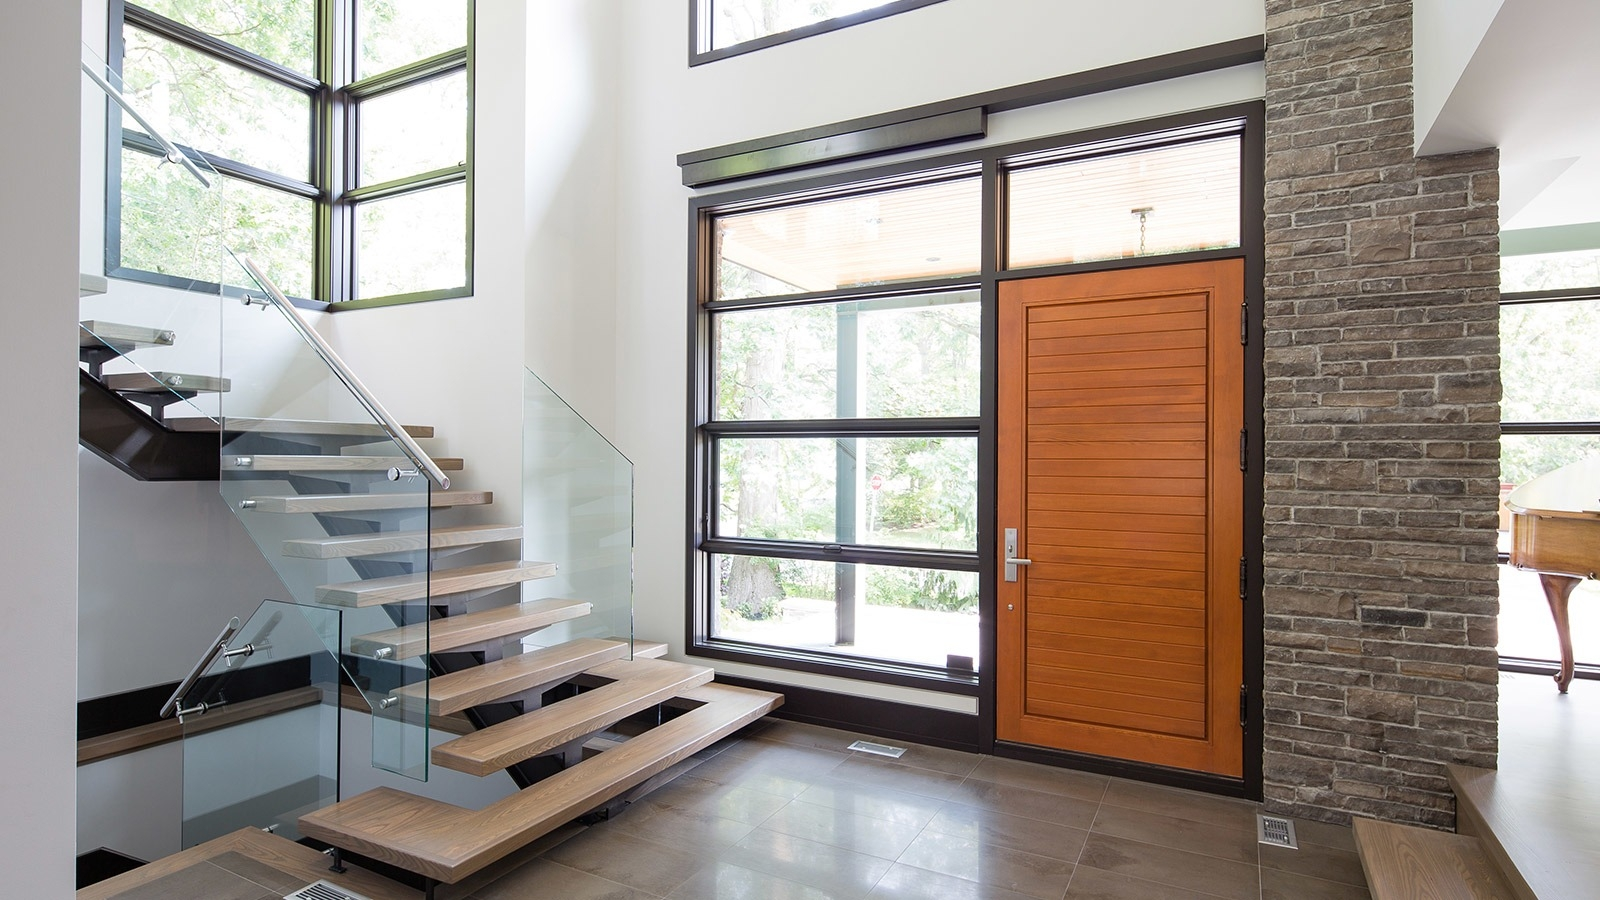 David S House Custom House Design Portfolio Gallery   Home Front Staircase Design   Entrance Front Door Stair   Home Jina   Ghar   Roof Railing Brick   Outer Wall